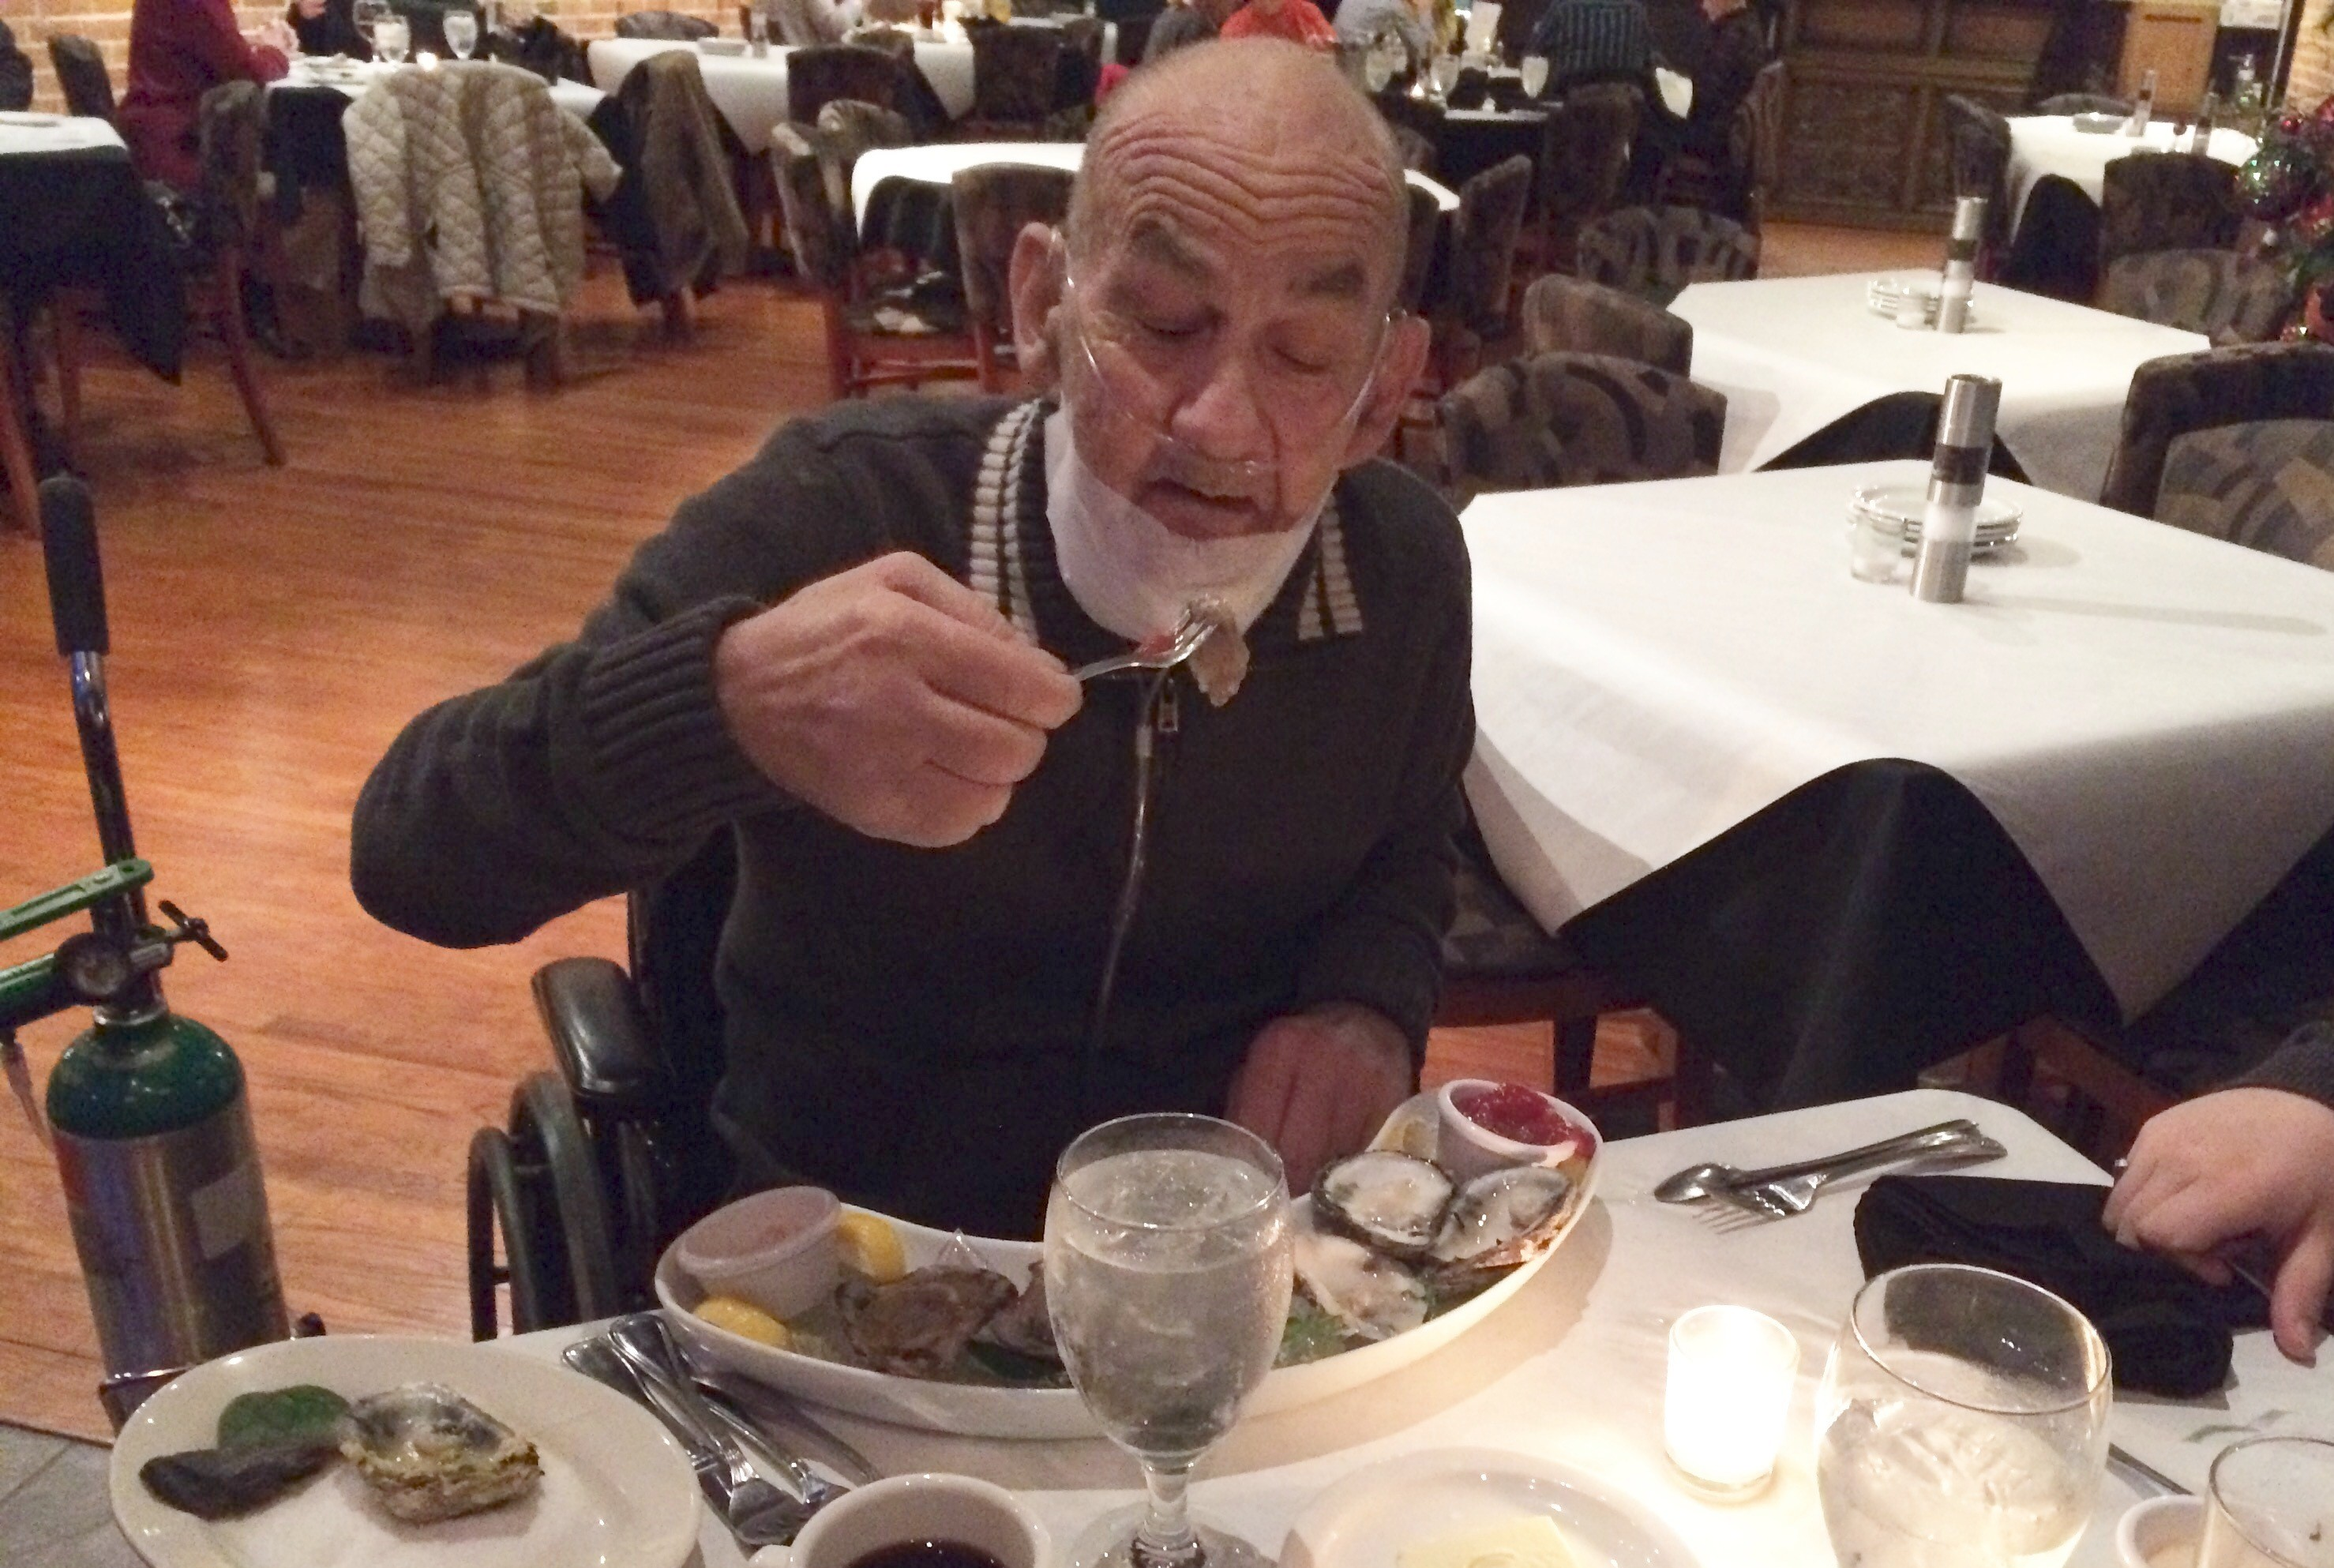 Ray Reynolds enjoyed a four-course meal including a half dozen oysters at Crooner's Lounge in Fort Scott